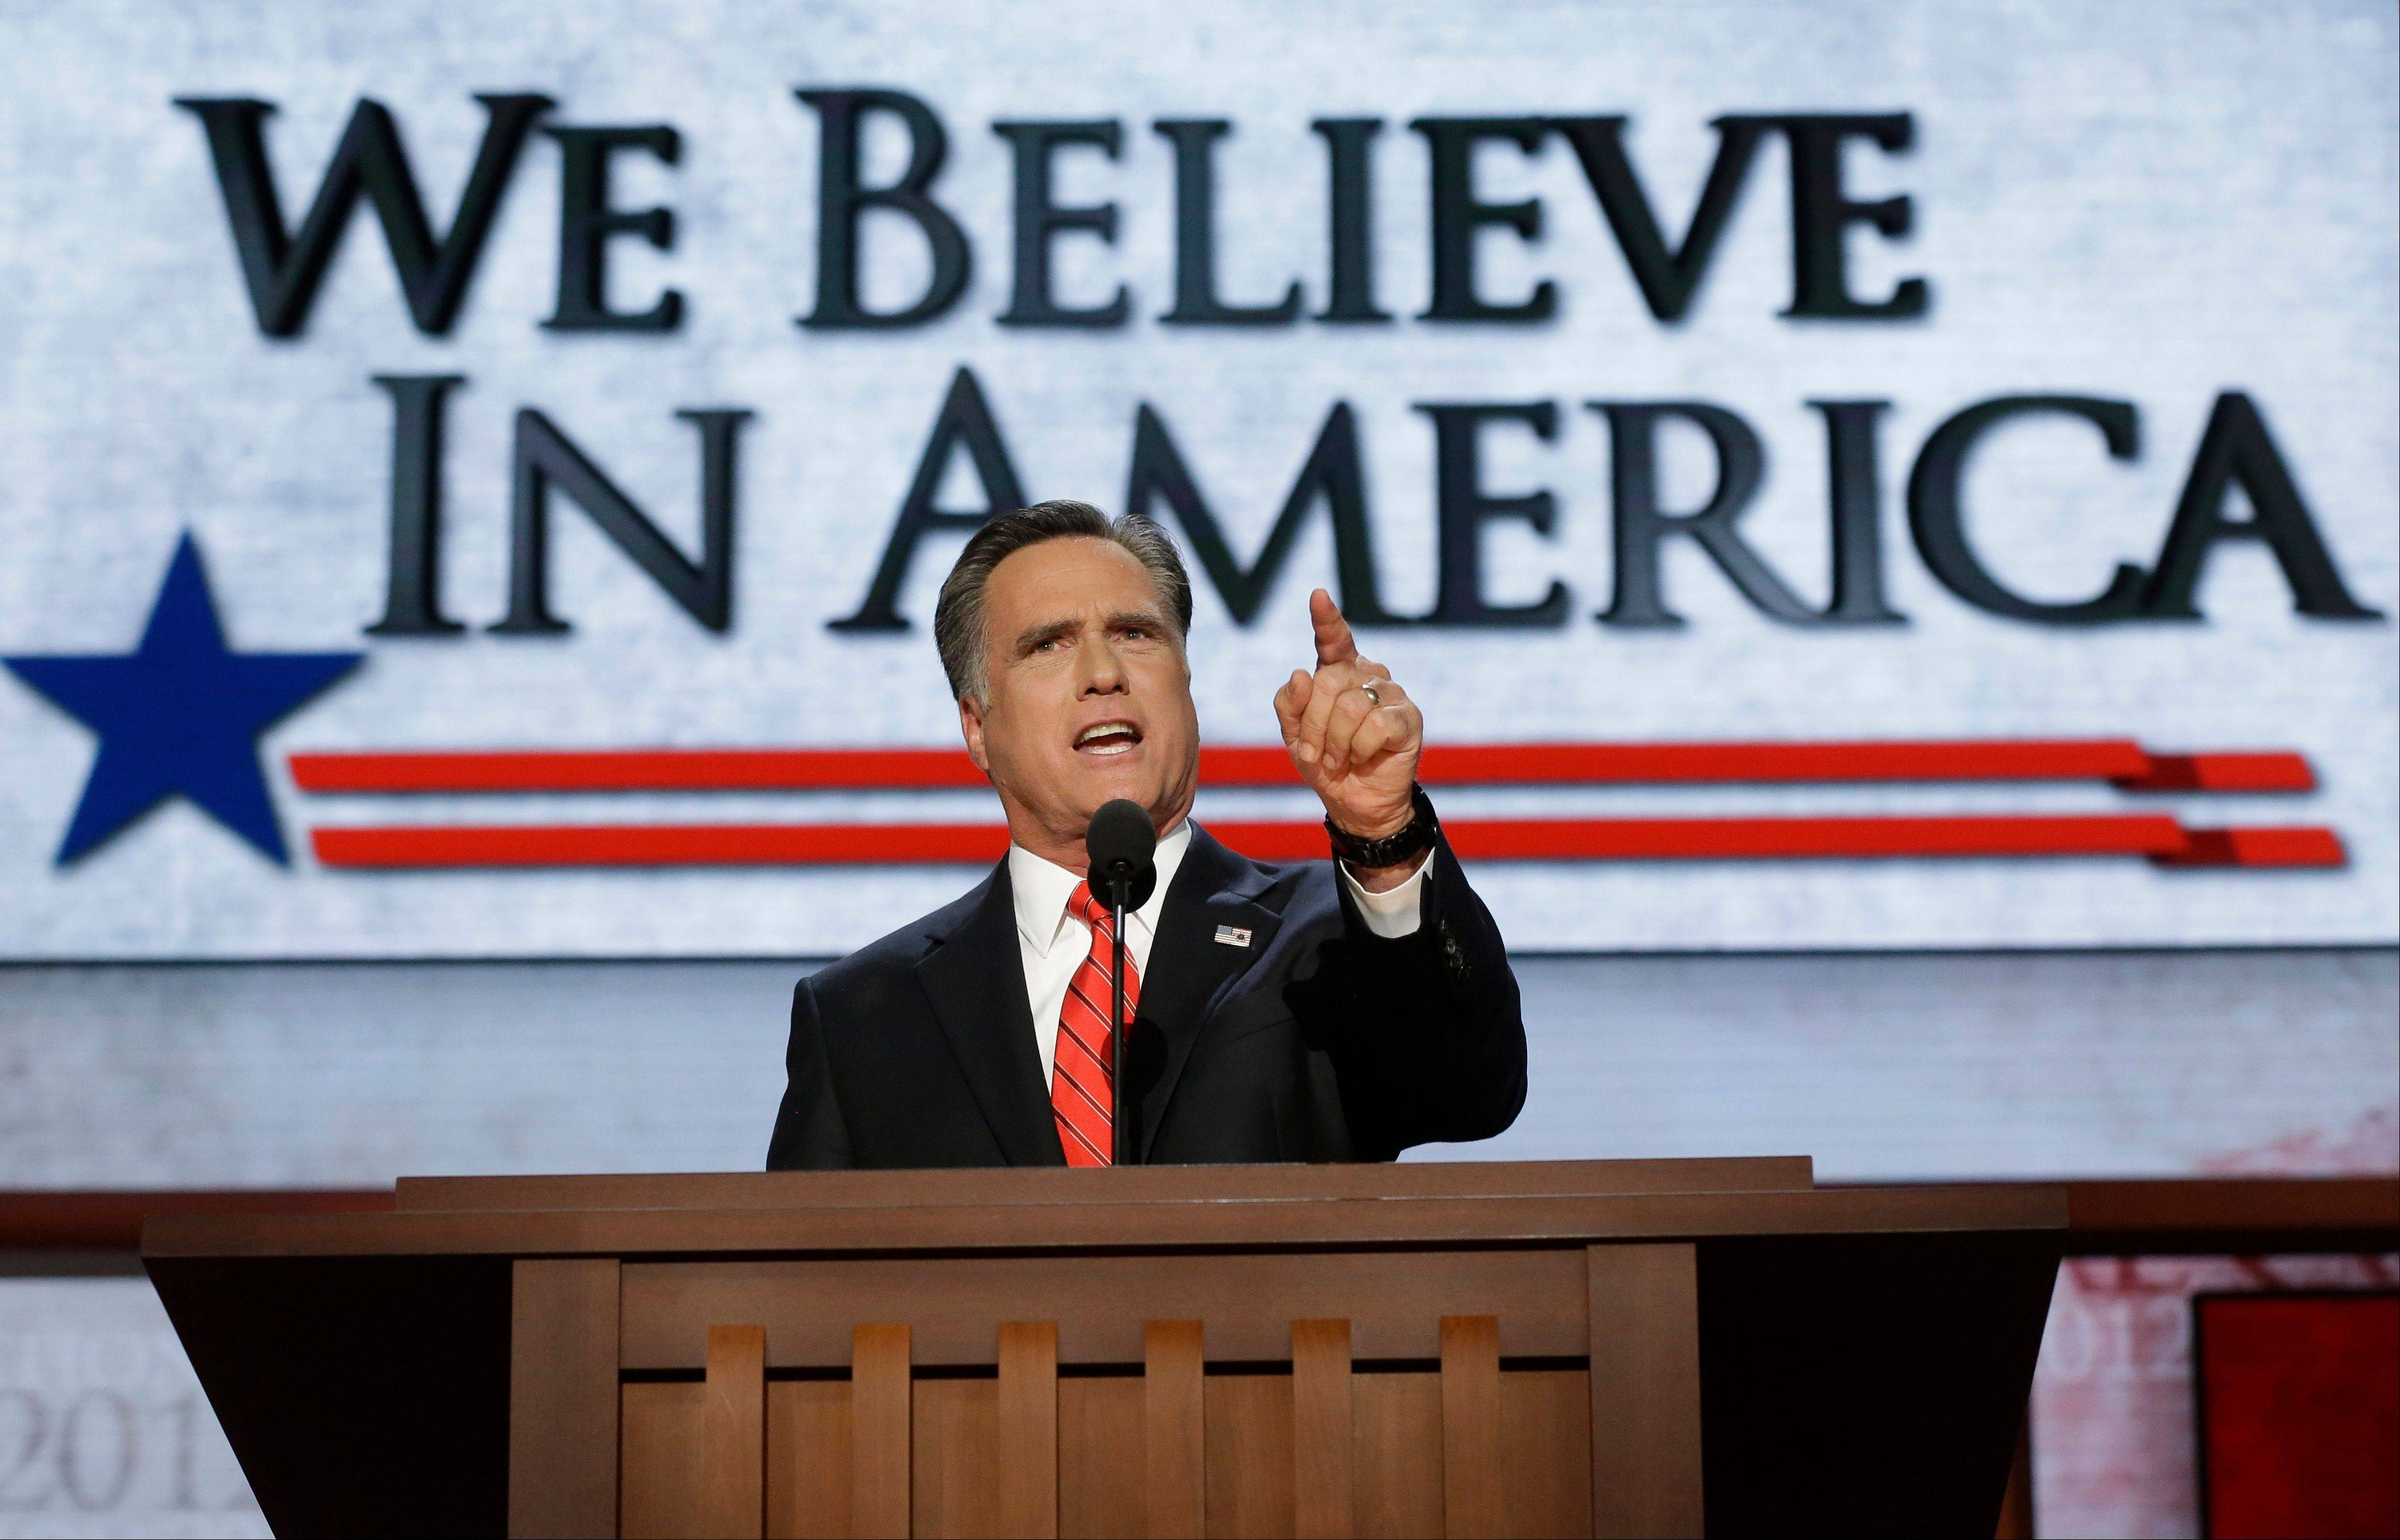 Republican presidential nominee Mitt Romney addresses delegates before speaking at the Republican National Convention in Tampa, Fla., on Thursday, Aug. 30, 2012.